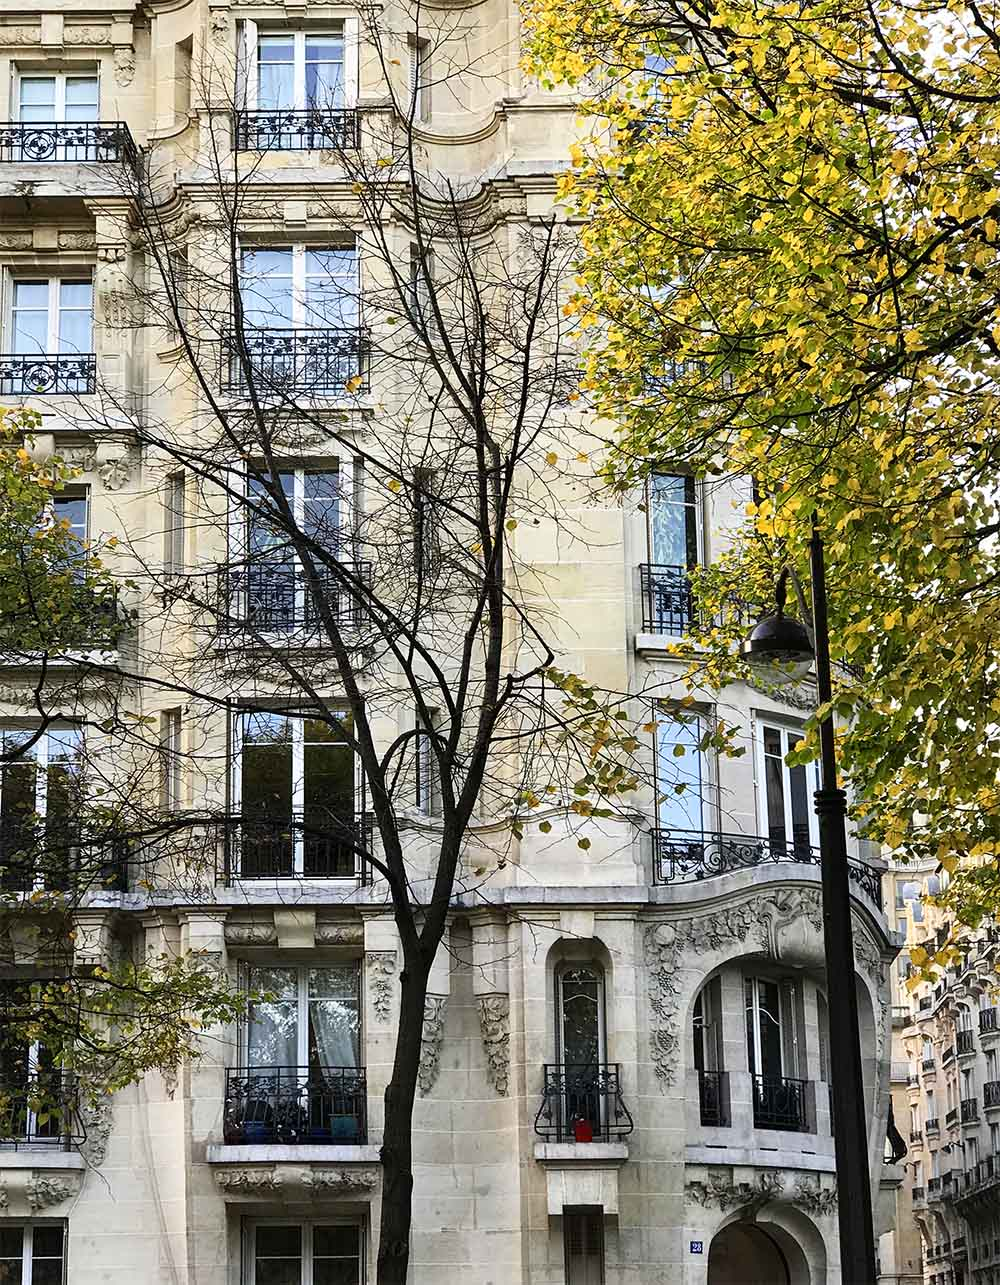 Parisian architecture and Fall colors is such a beautiful combination.